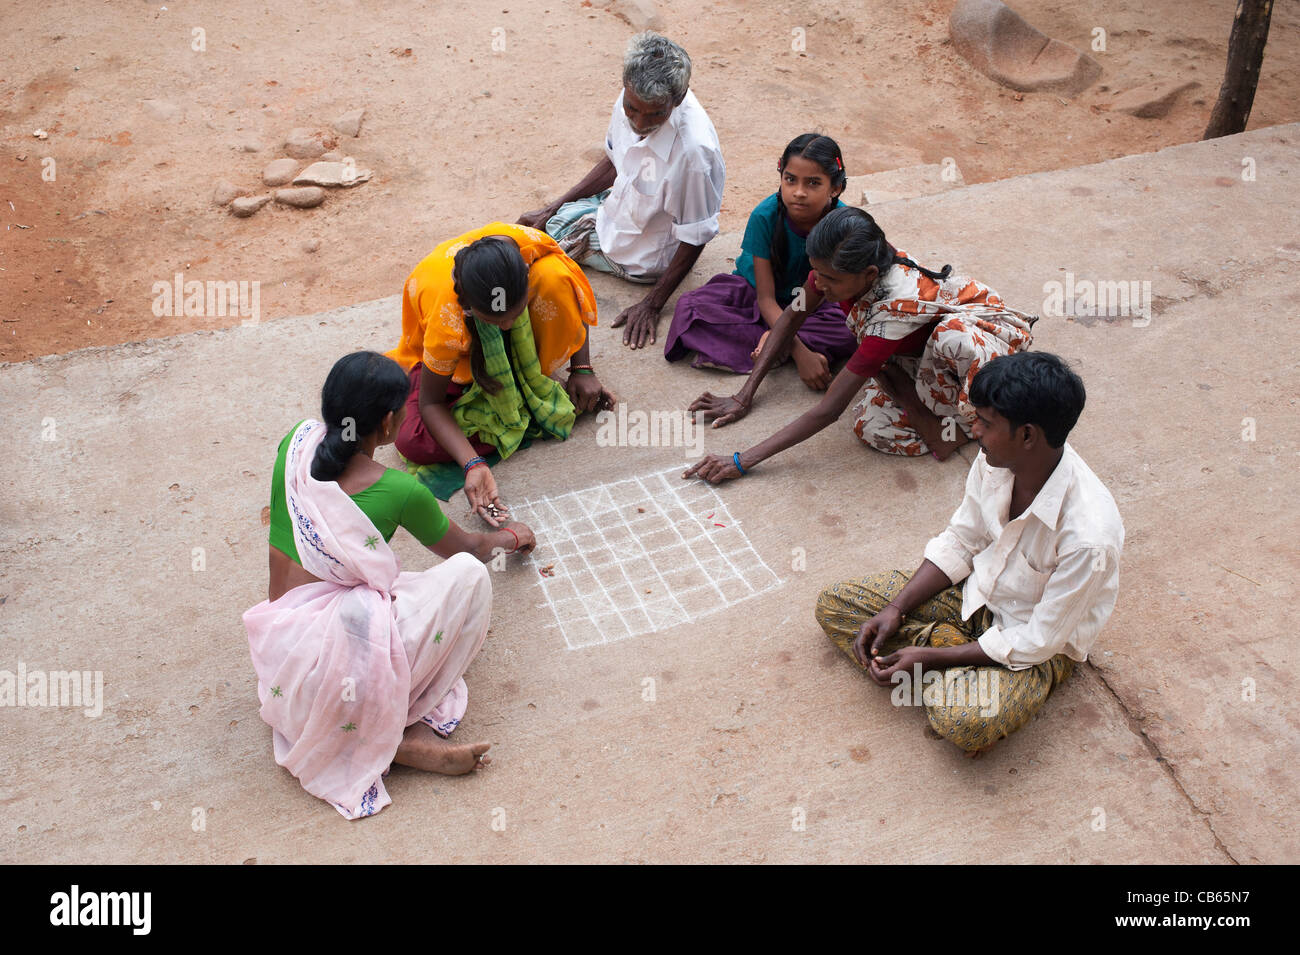 indian village people playing a game in the street. Andhra Pradesh, India - Stock Image